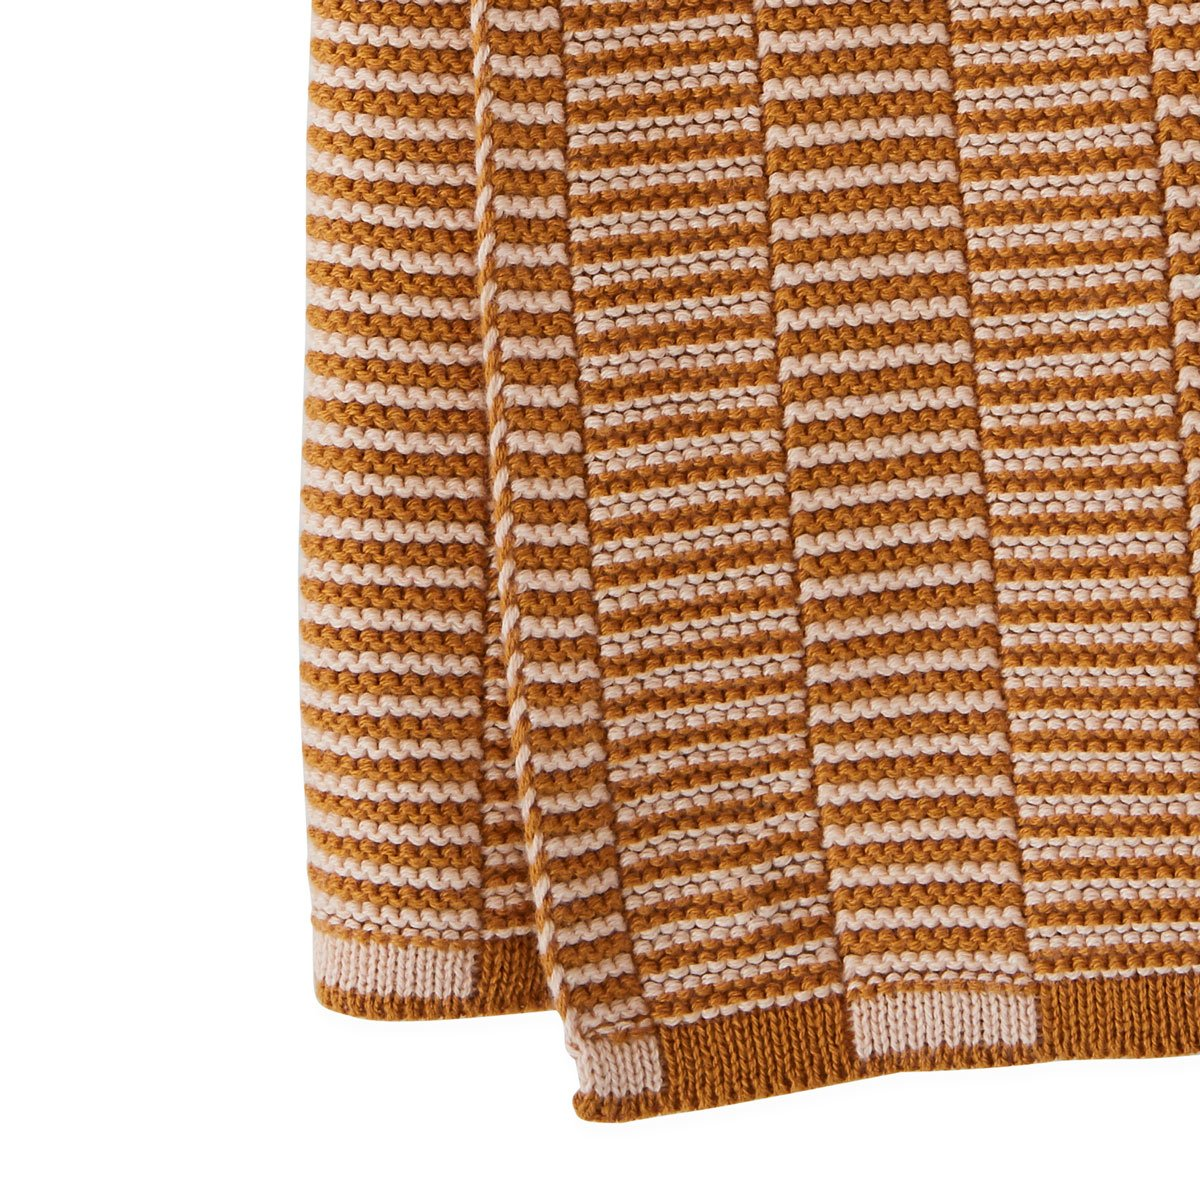 Stringa Mini Towel Caramel Rose knitted hand towel OYOY living design